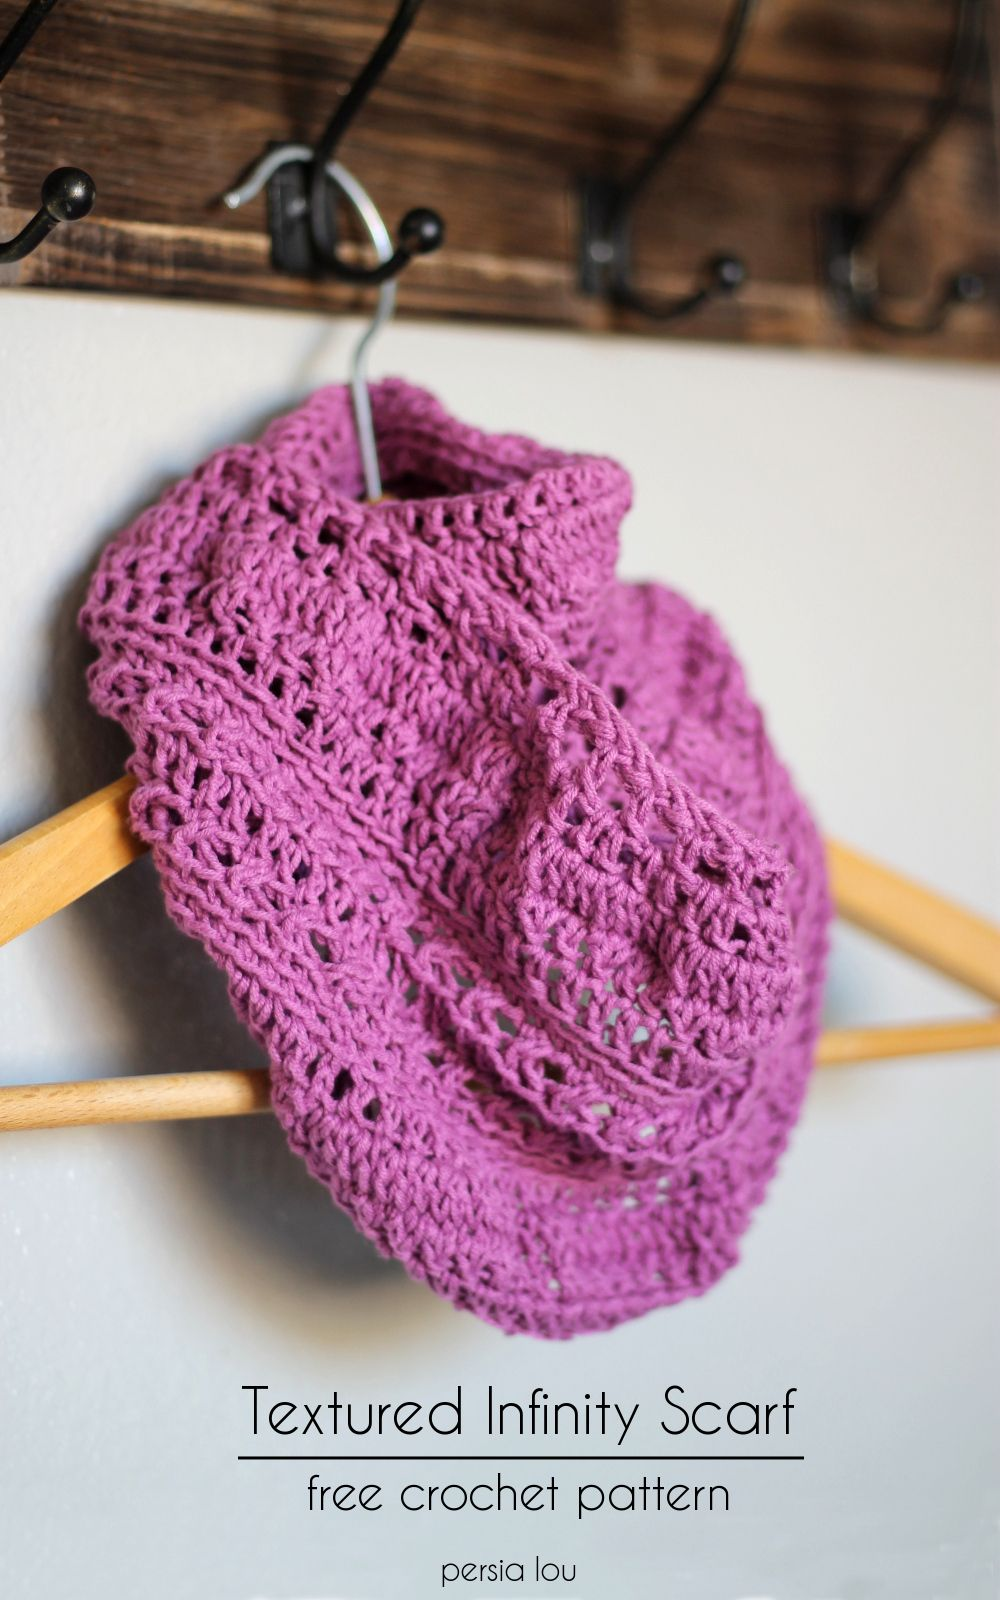 Textured Infinity Scarf Pattern | Scarf patterns, Free crochet and ...